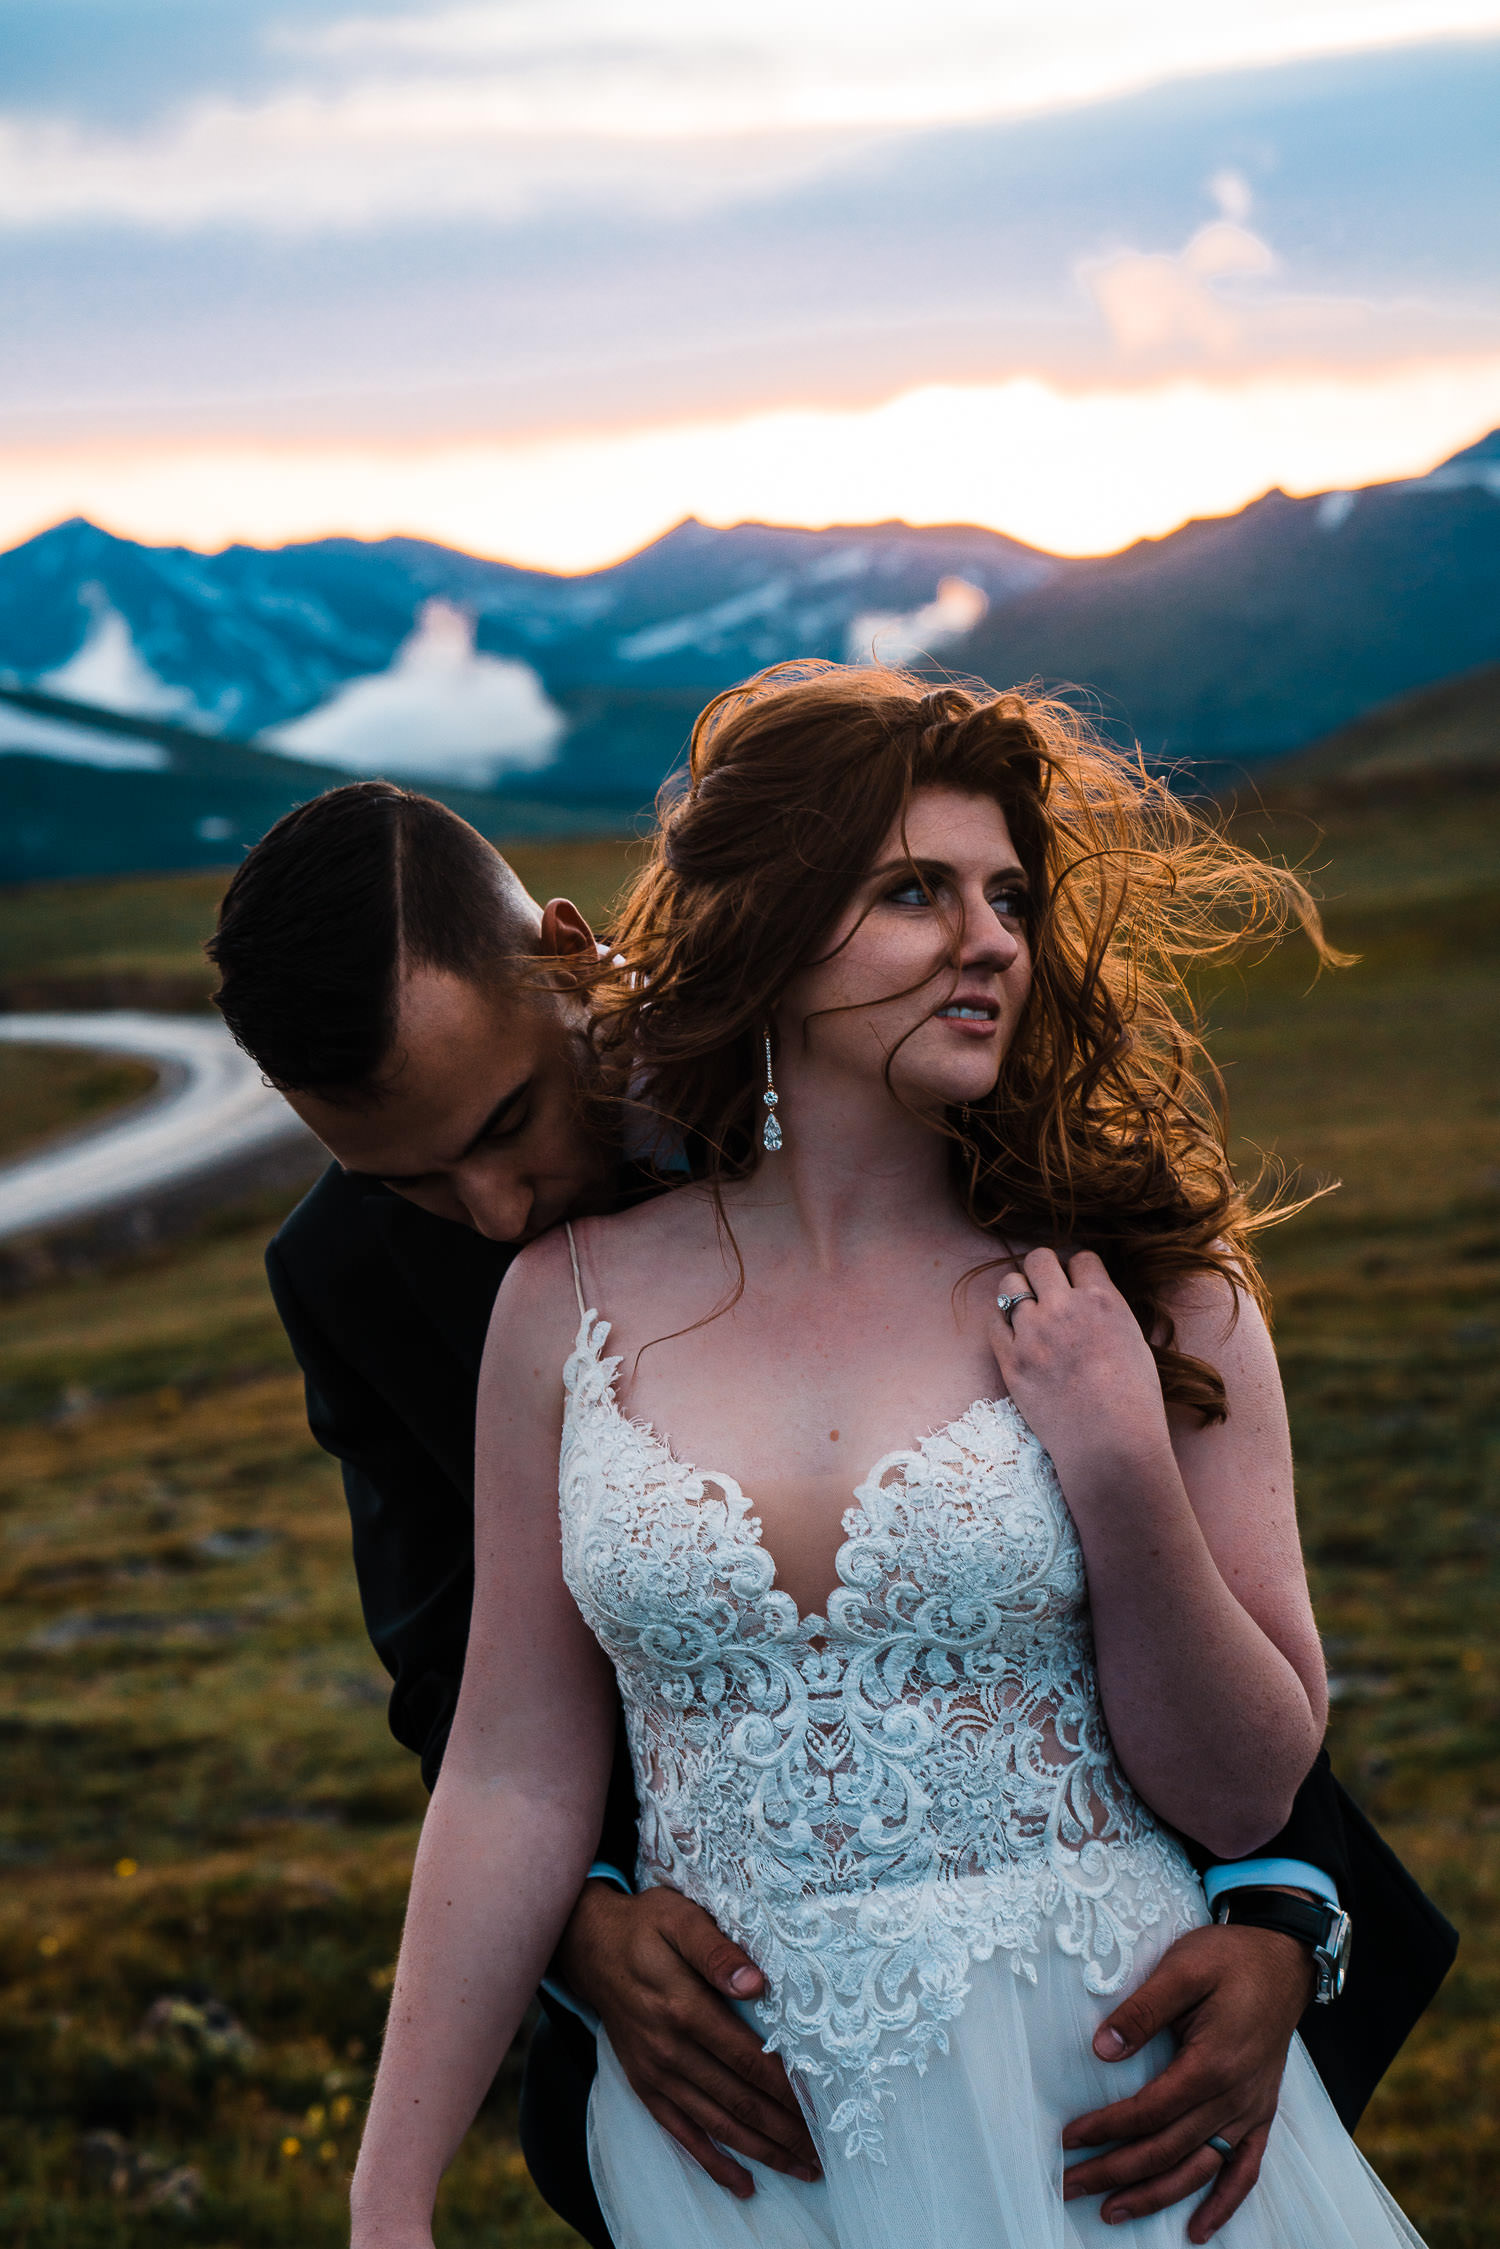 Newlywed couple embraces in the mountains with wind blowing.